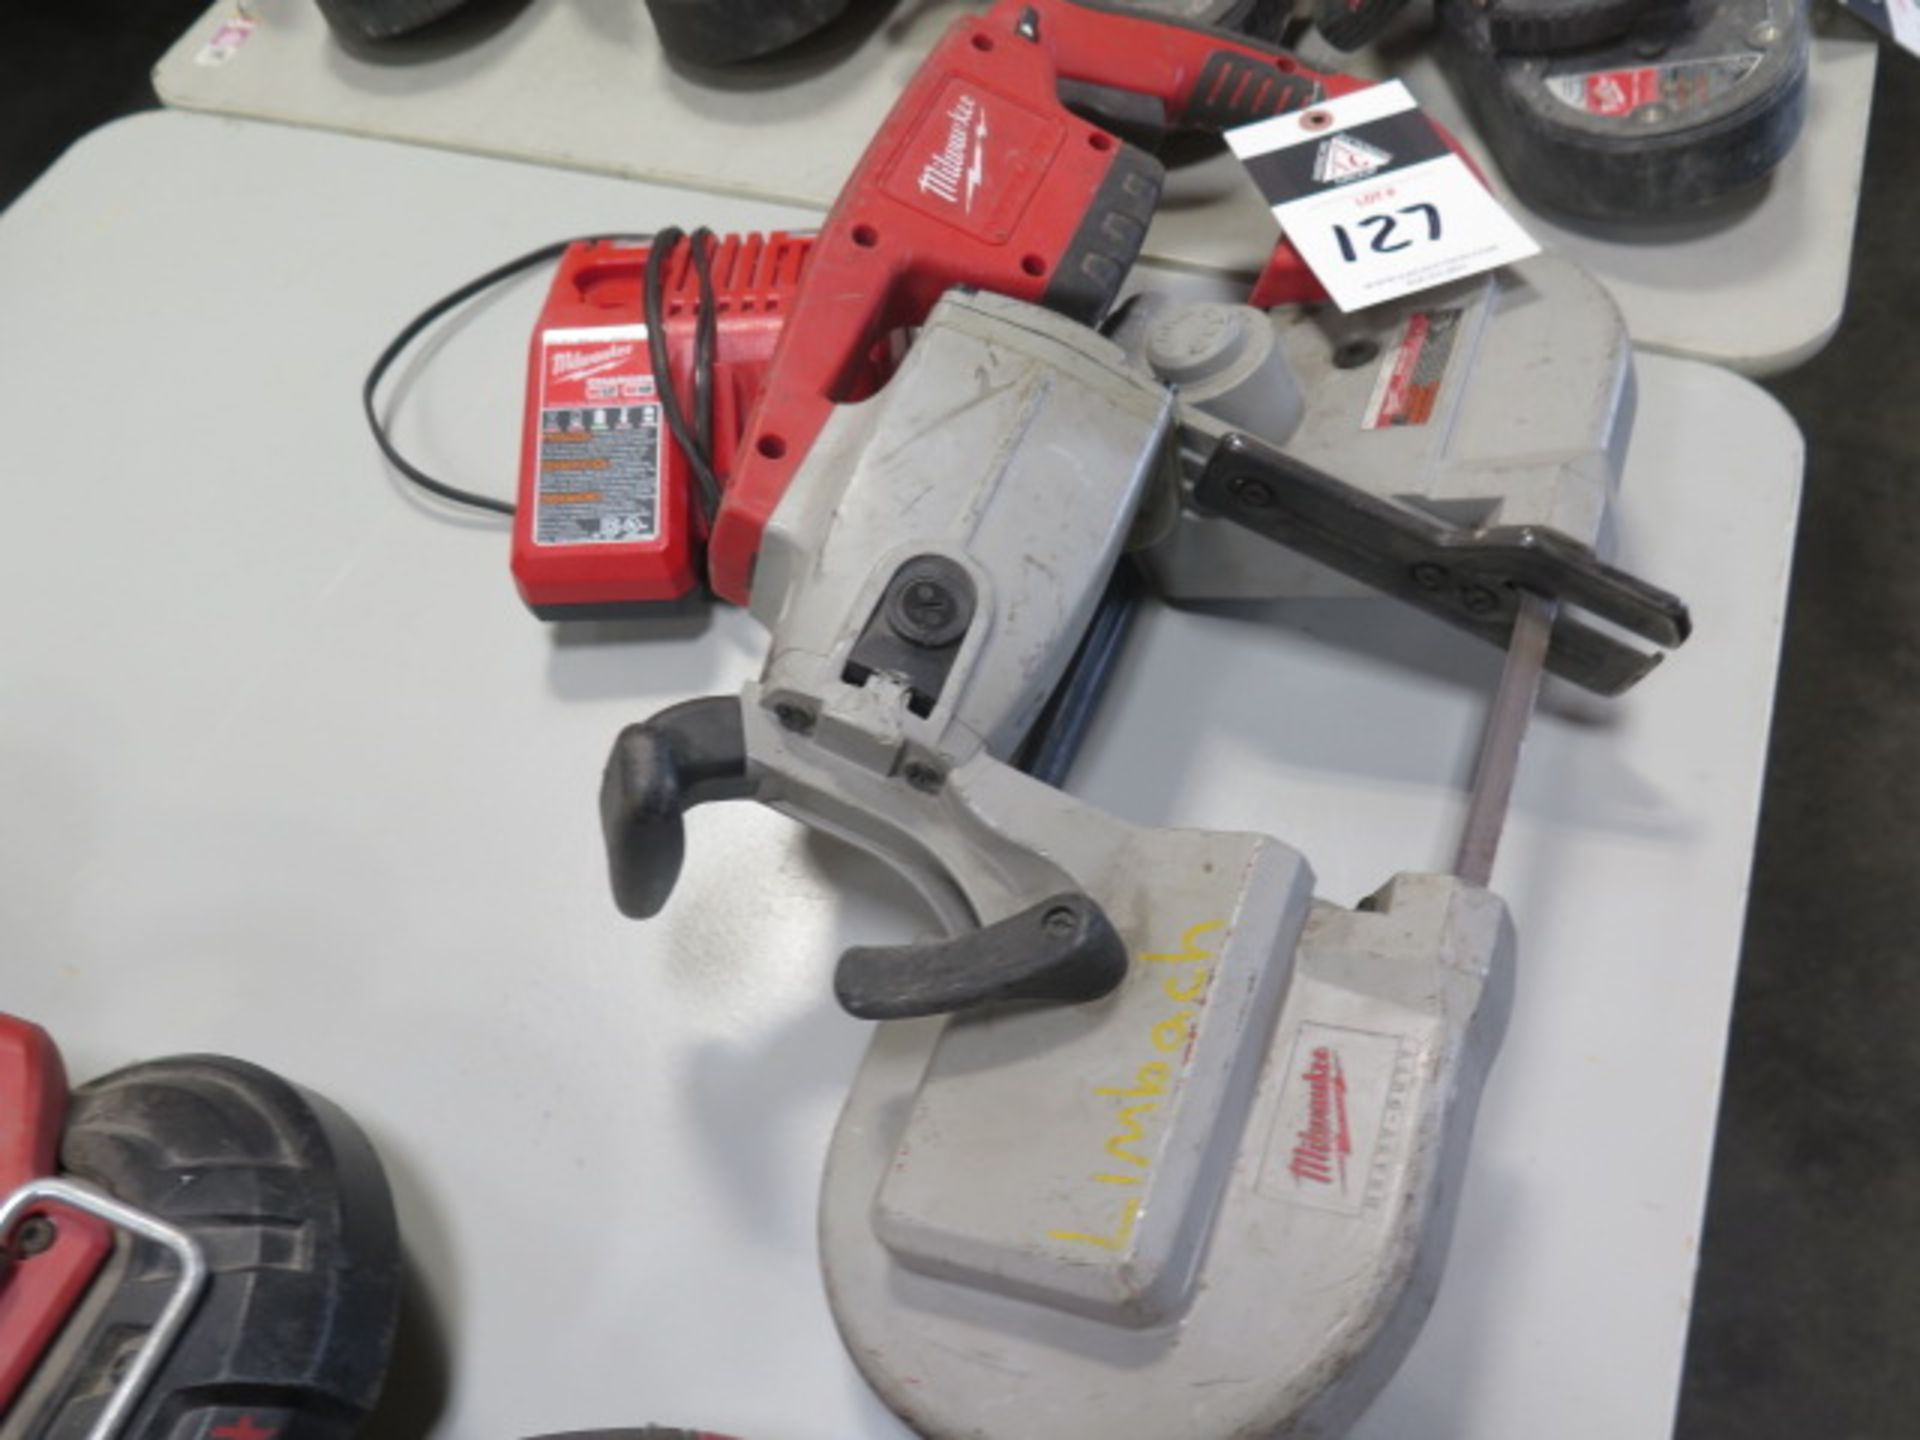 Milwaukee 18 Volt Deep Cut Portable Band Saw (SOLD AS-IS - NO WARRANTY) - Image 2 of 5